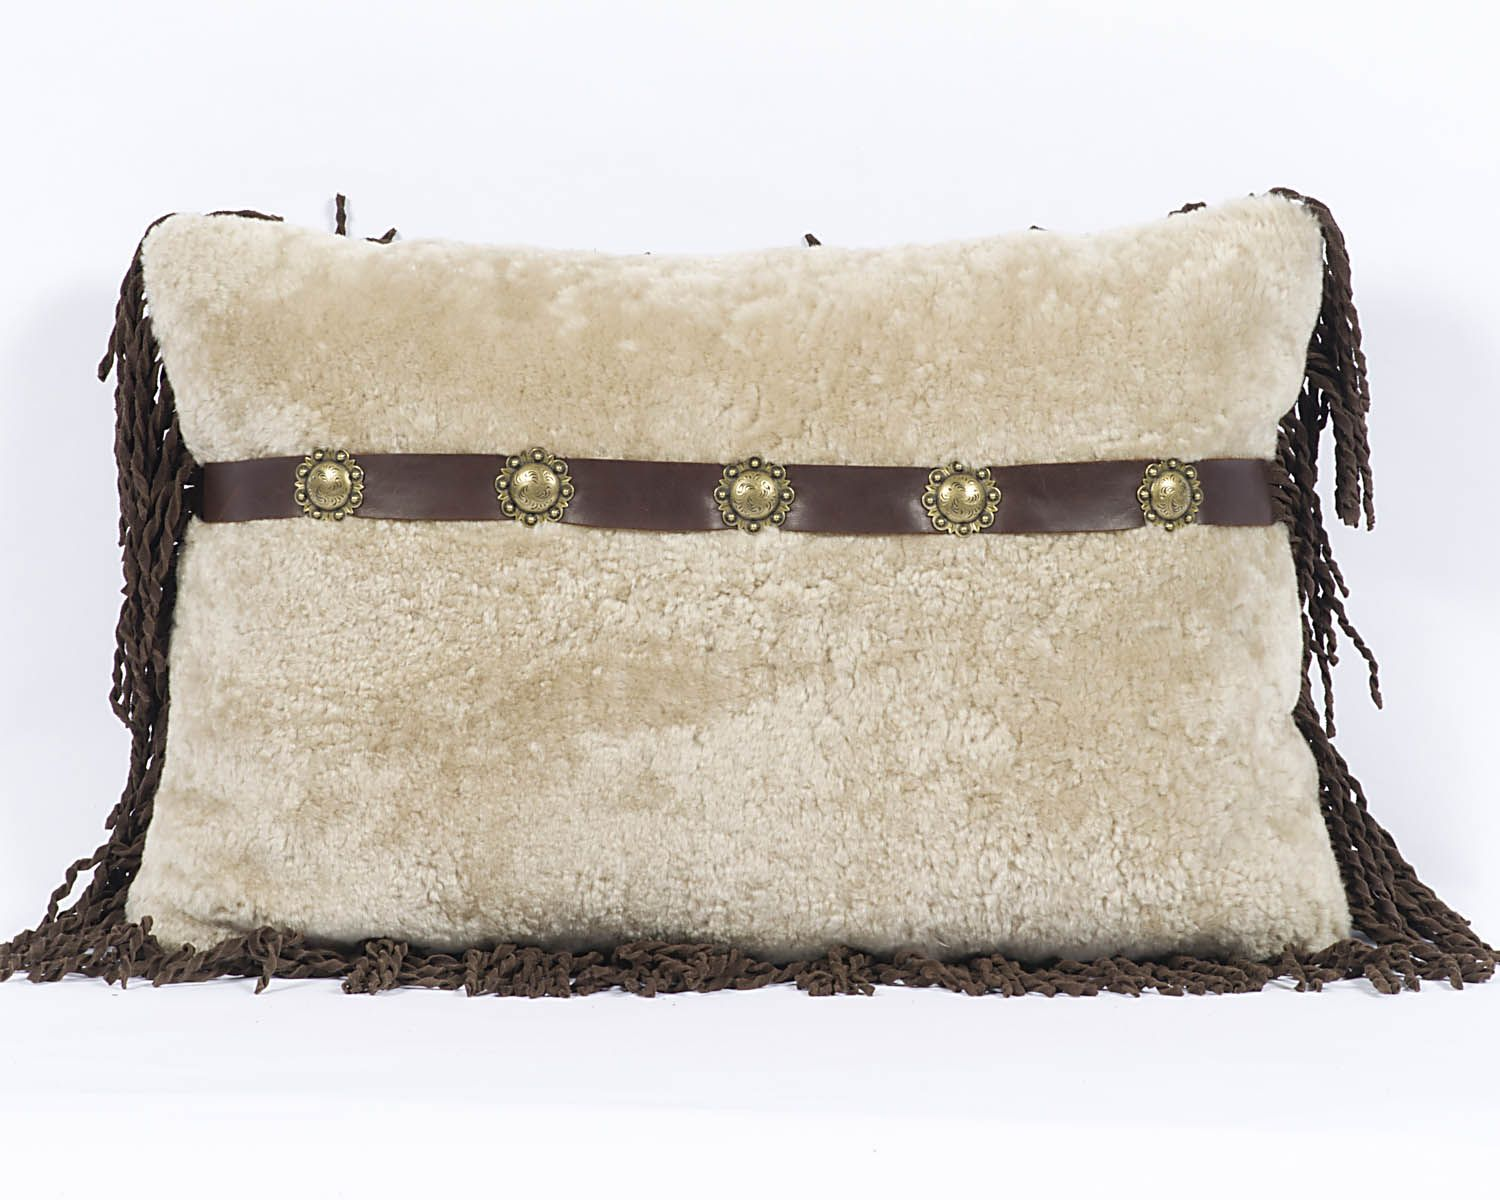 Sheep skin pillow for your mountain home